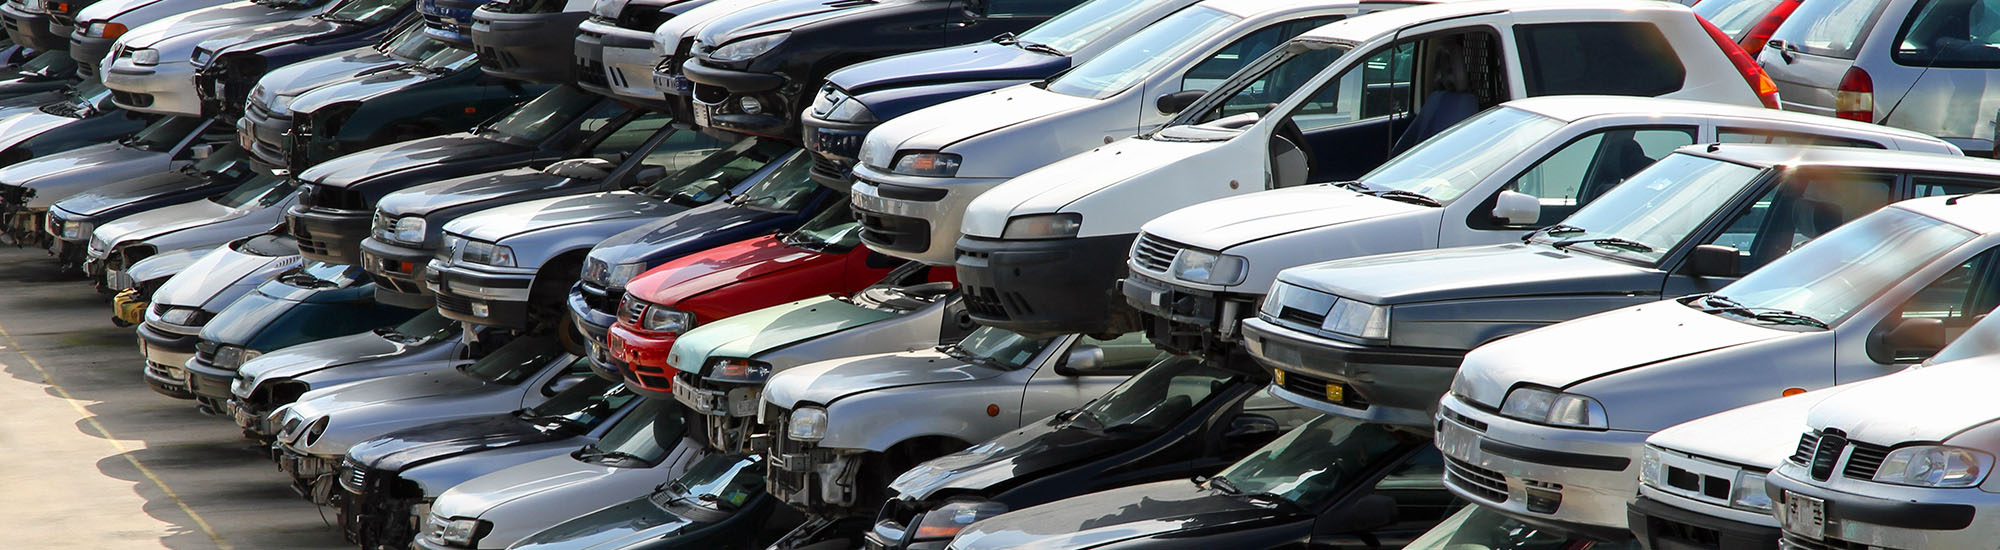 Scrap Car Collection Derby - Top Prices Paid | A1 Vehicle ...